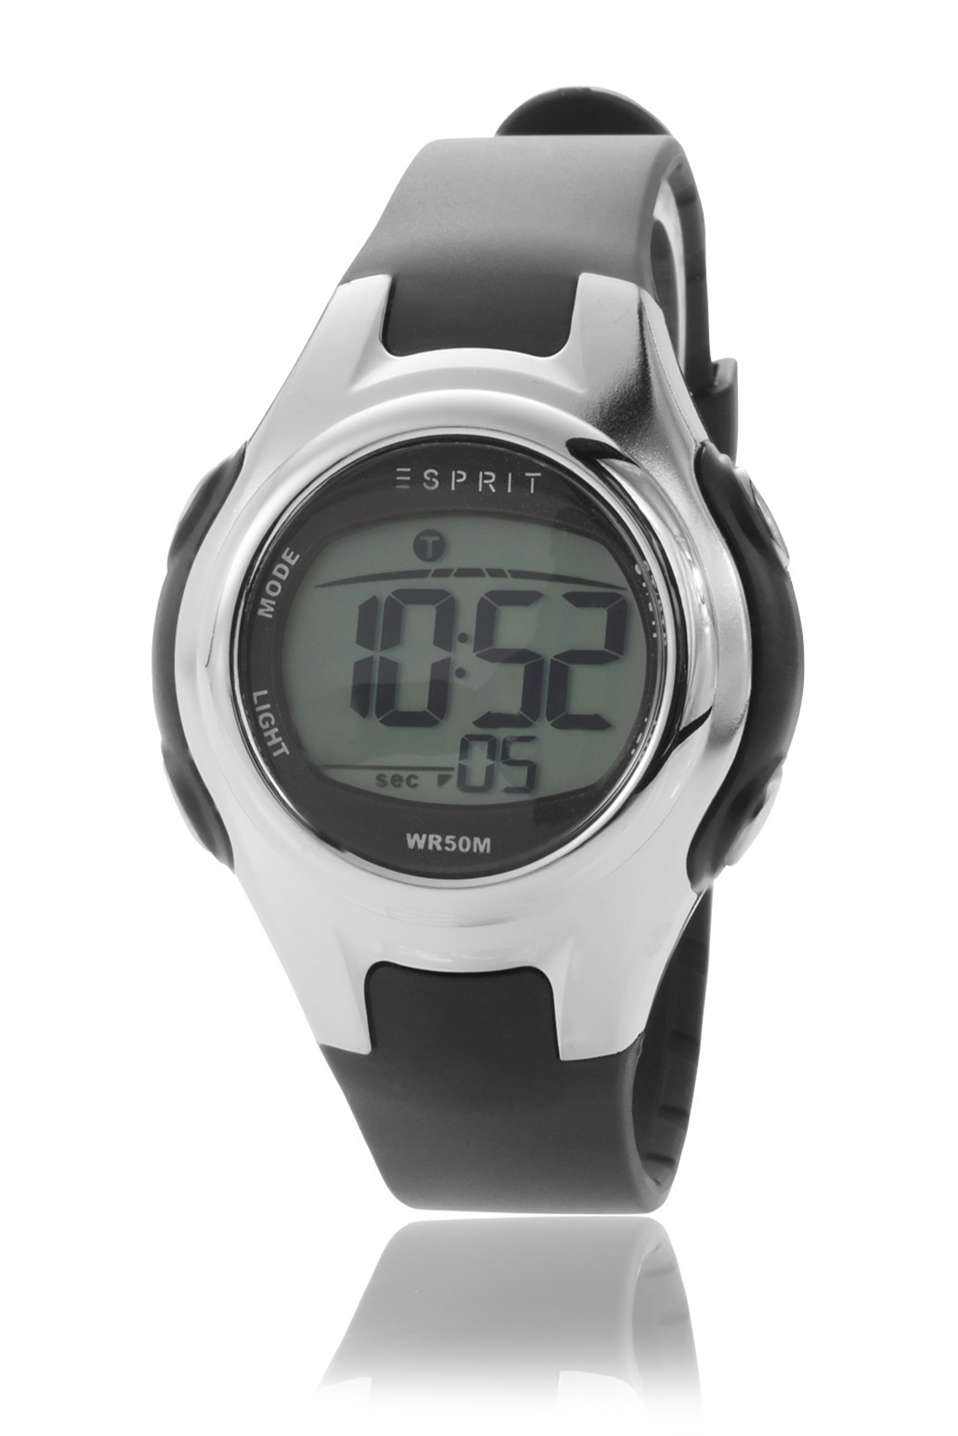 Black digital watch with an alarm, stopwatch, 12/24-hour display and a light, Ø approx. 35 mm